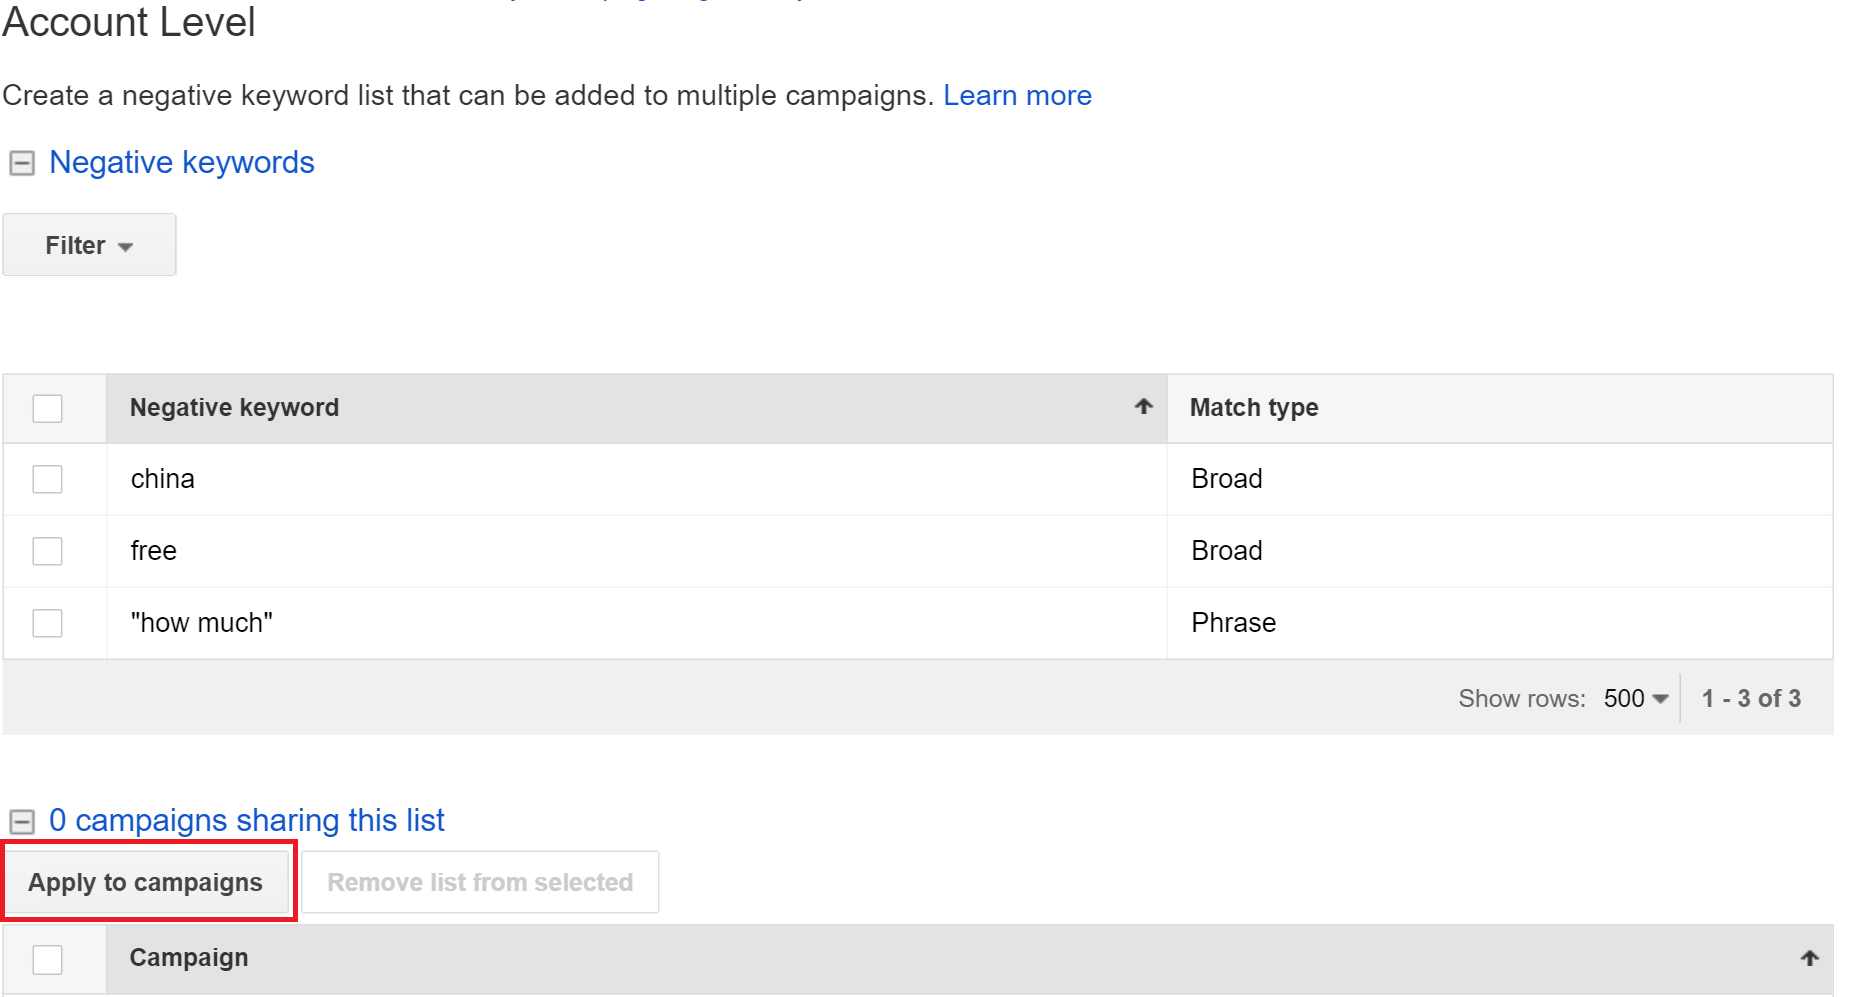 add campaigns to account level negative keyword list